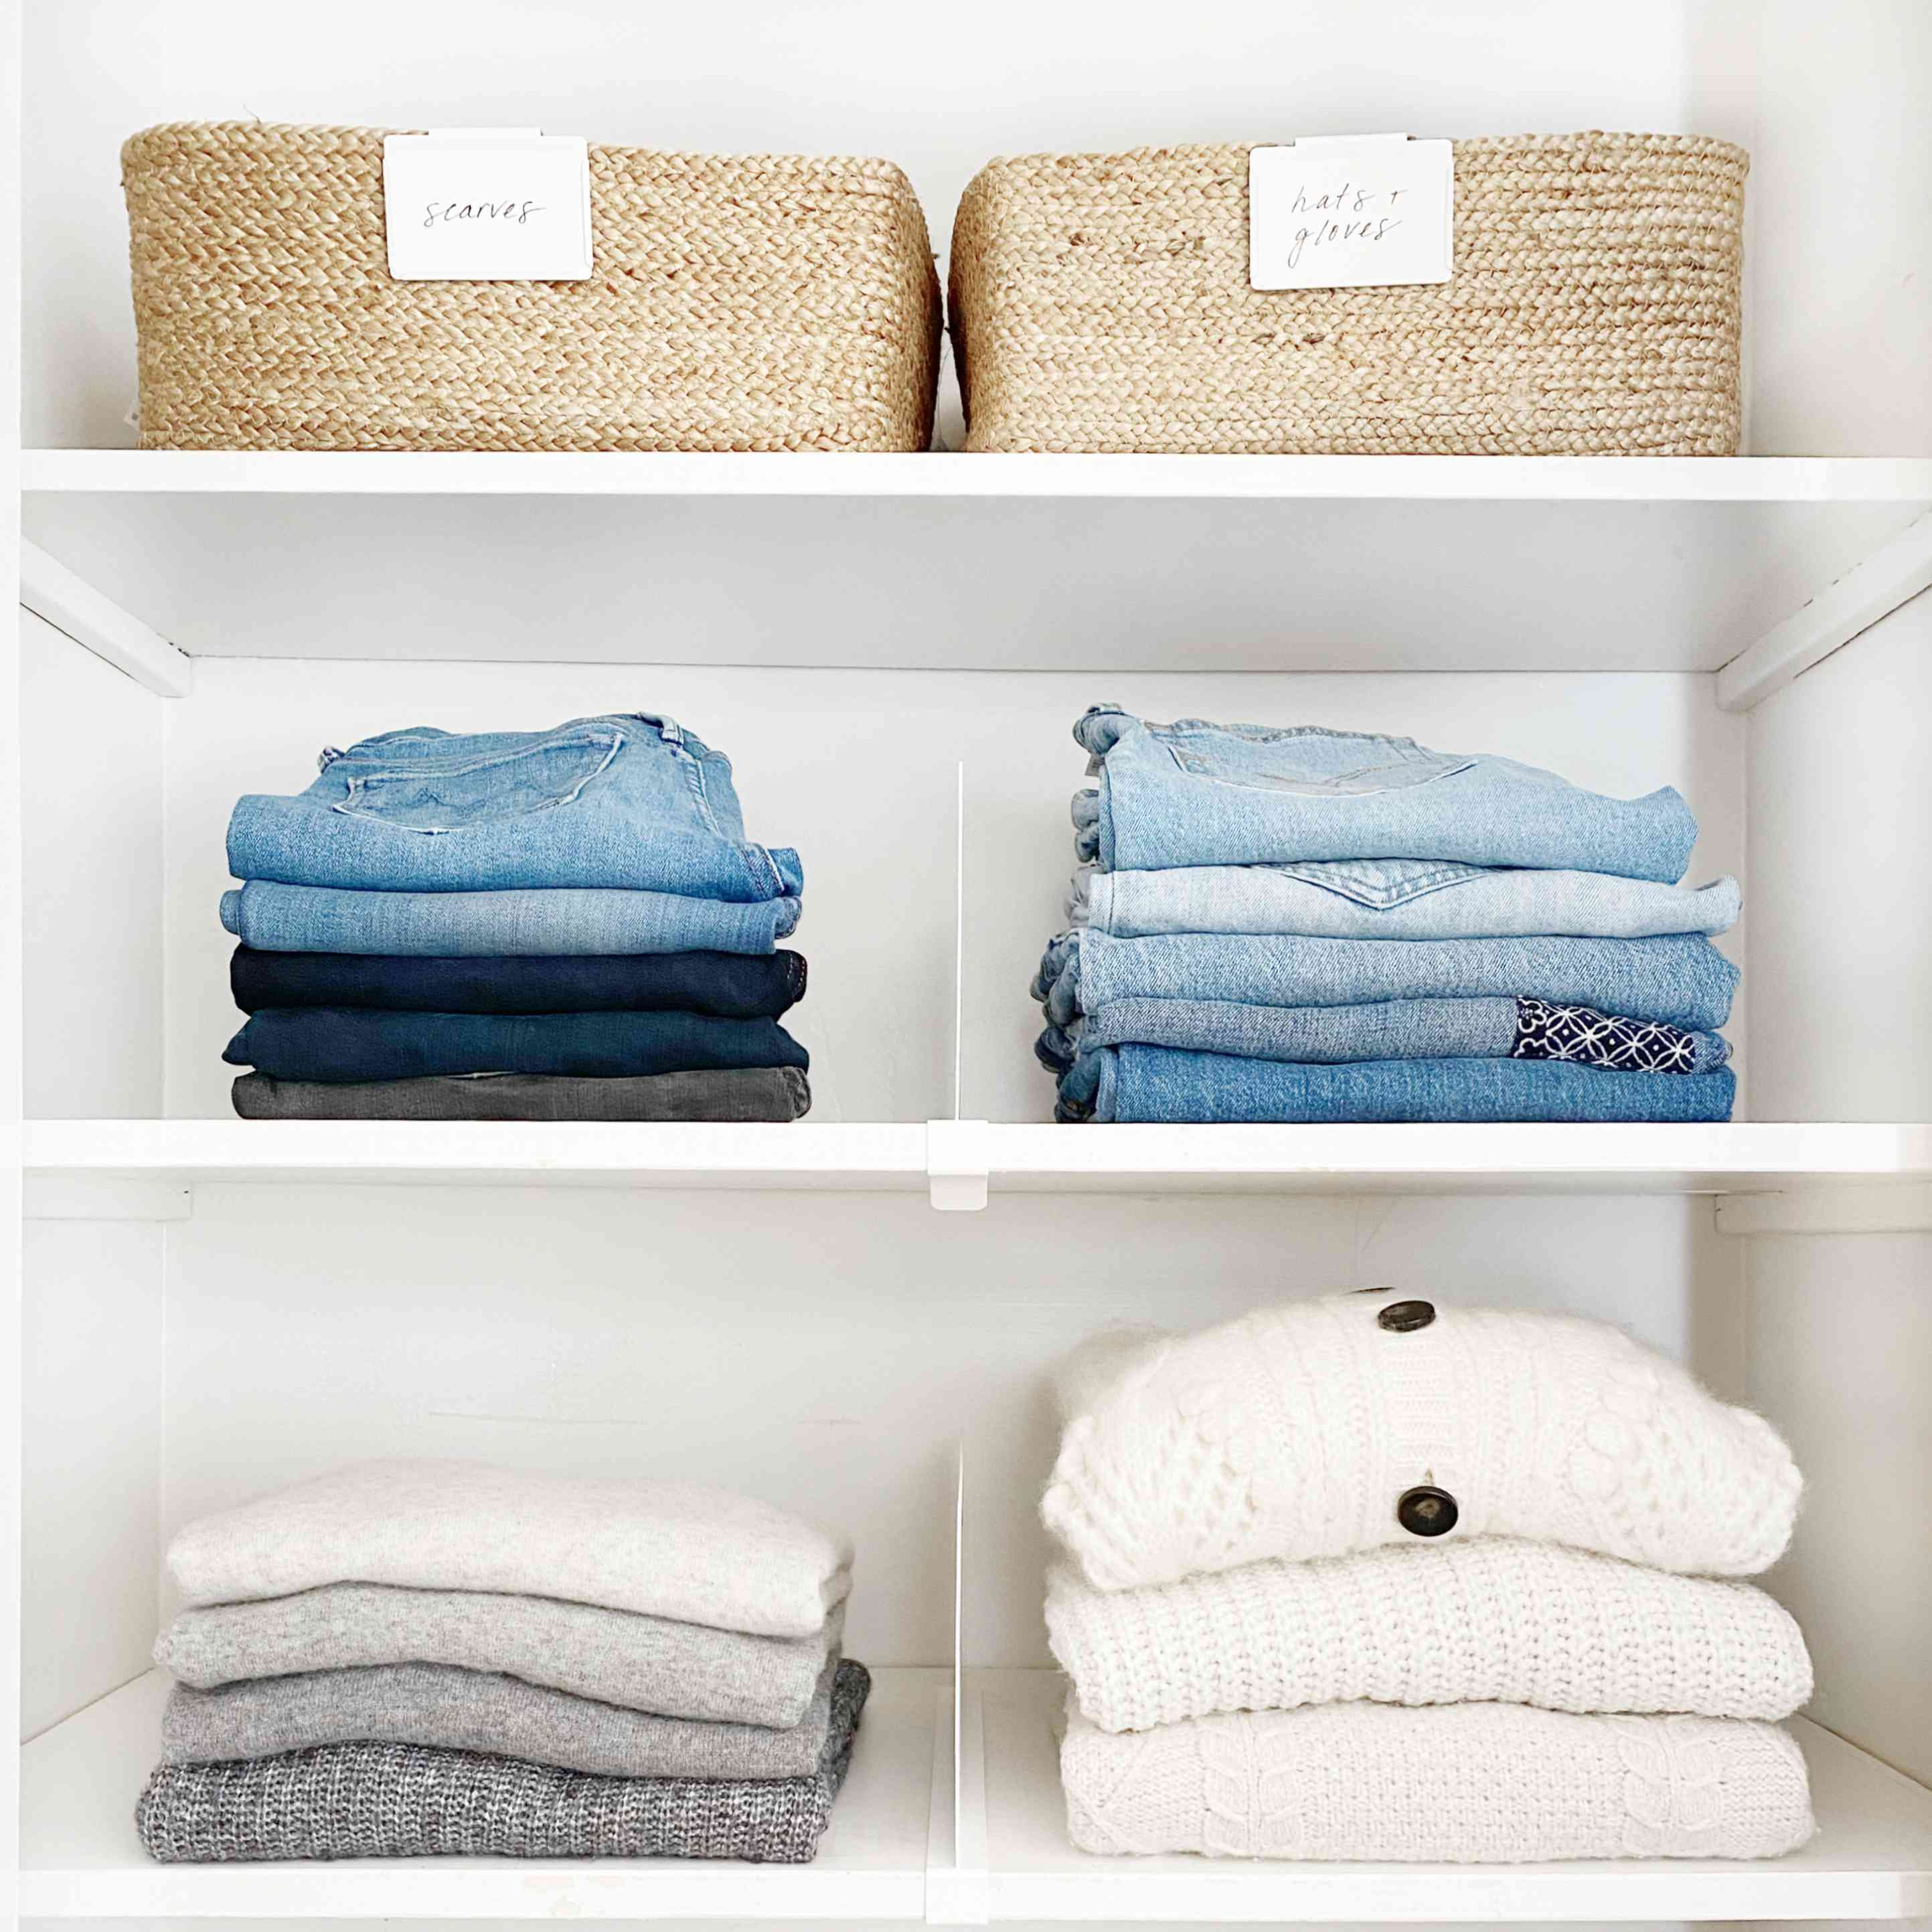 Closet with clear shelf dividers